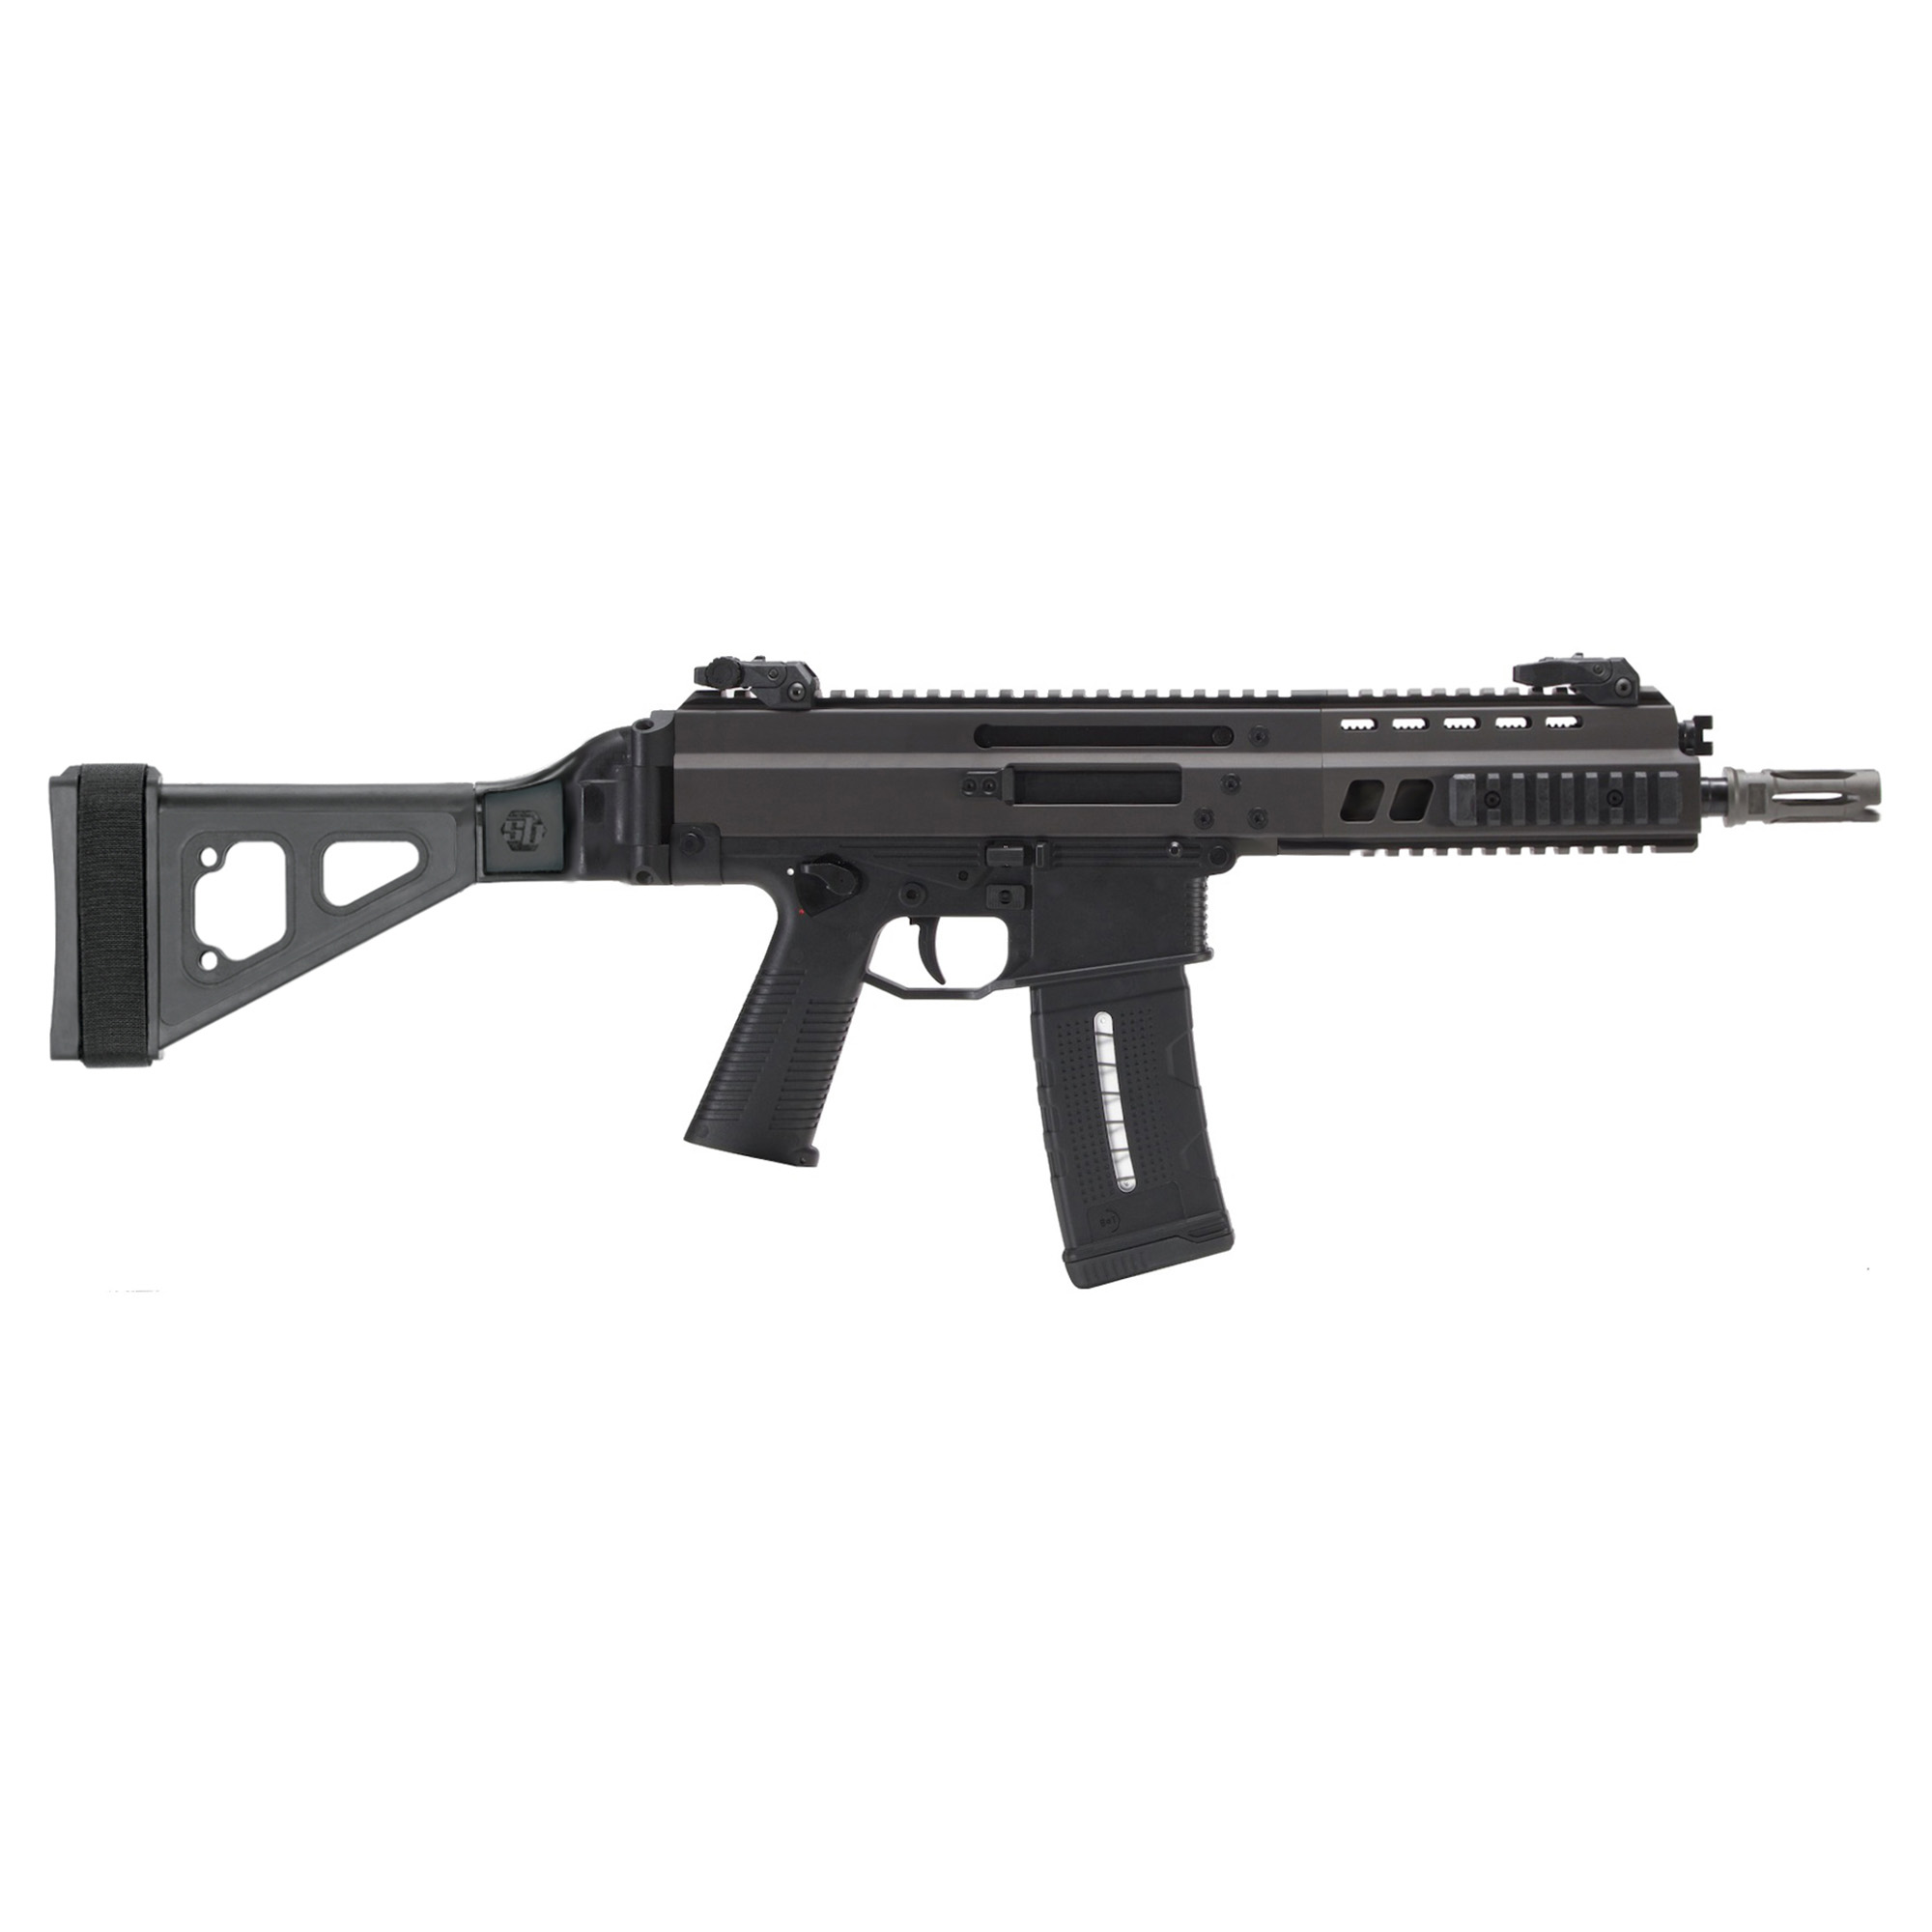 State of the art materials and manufacturing methods paired with Swiss Precision turn the APC300 into the perfect gun for defense as well as for plinking.